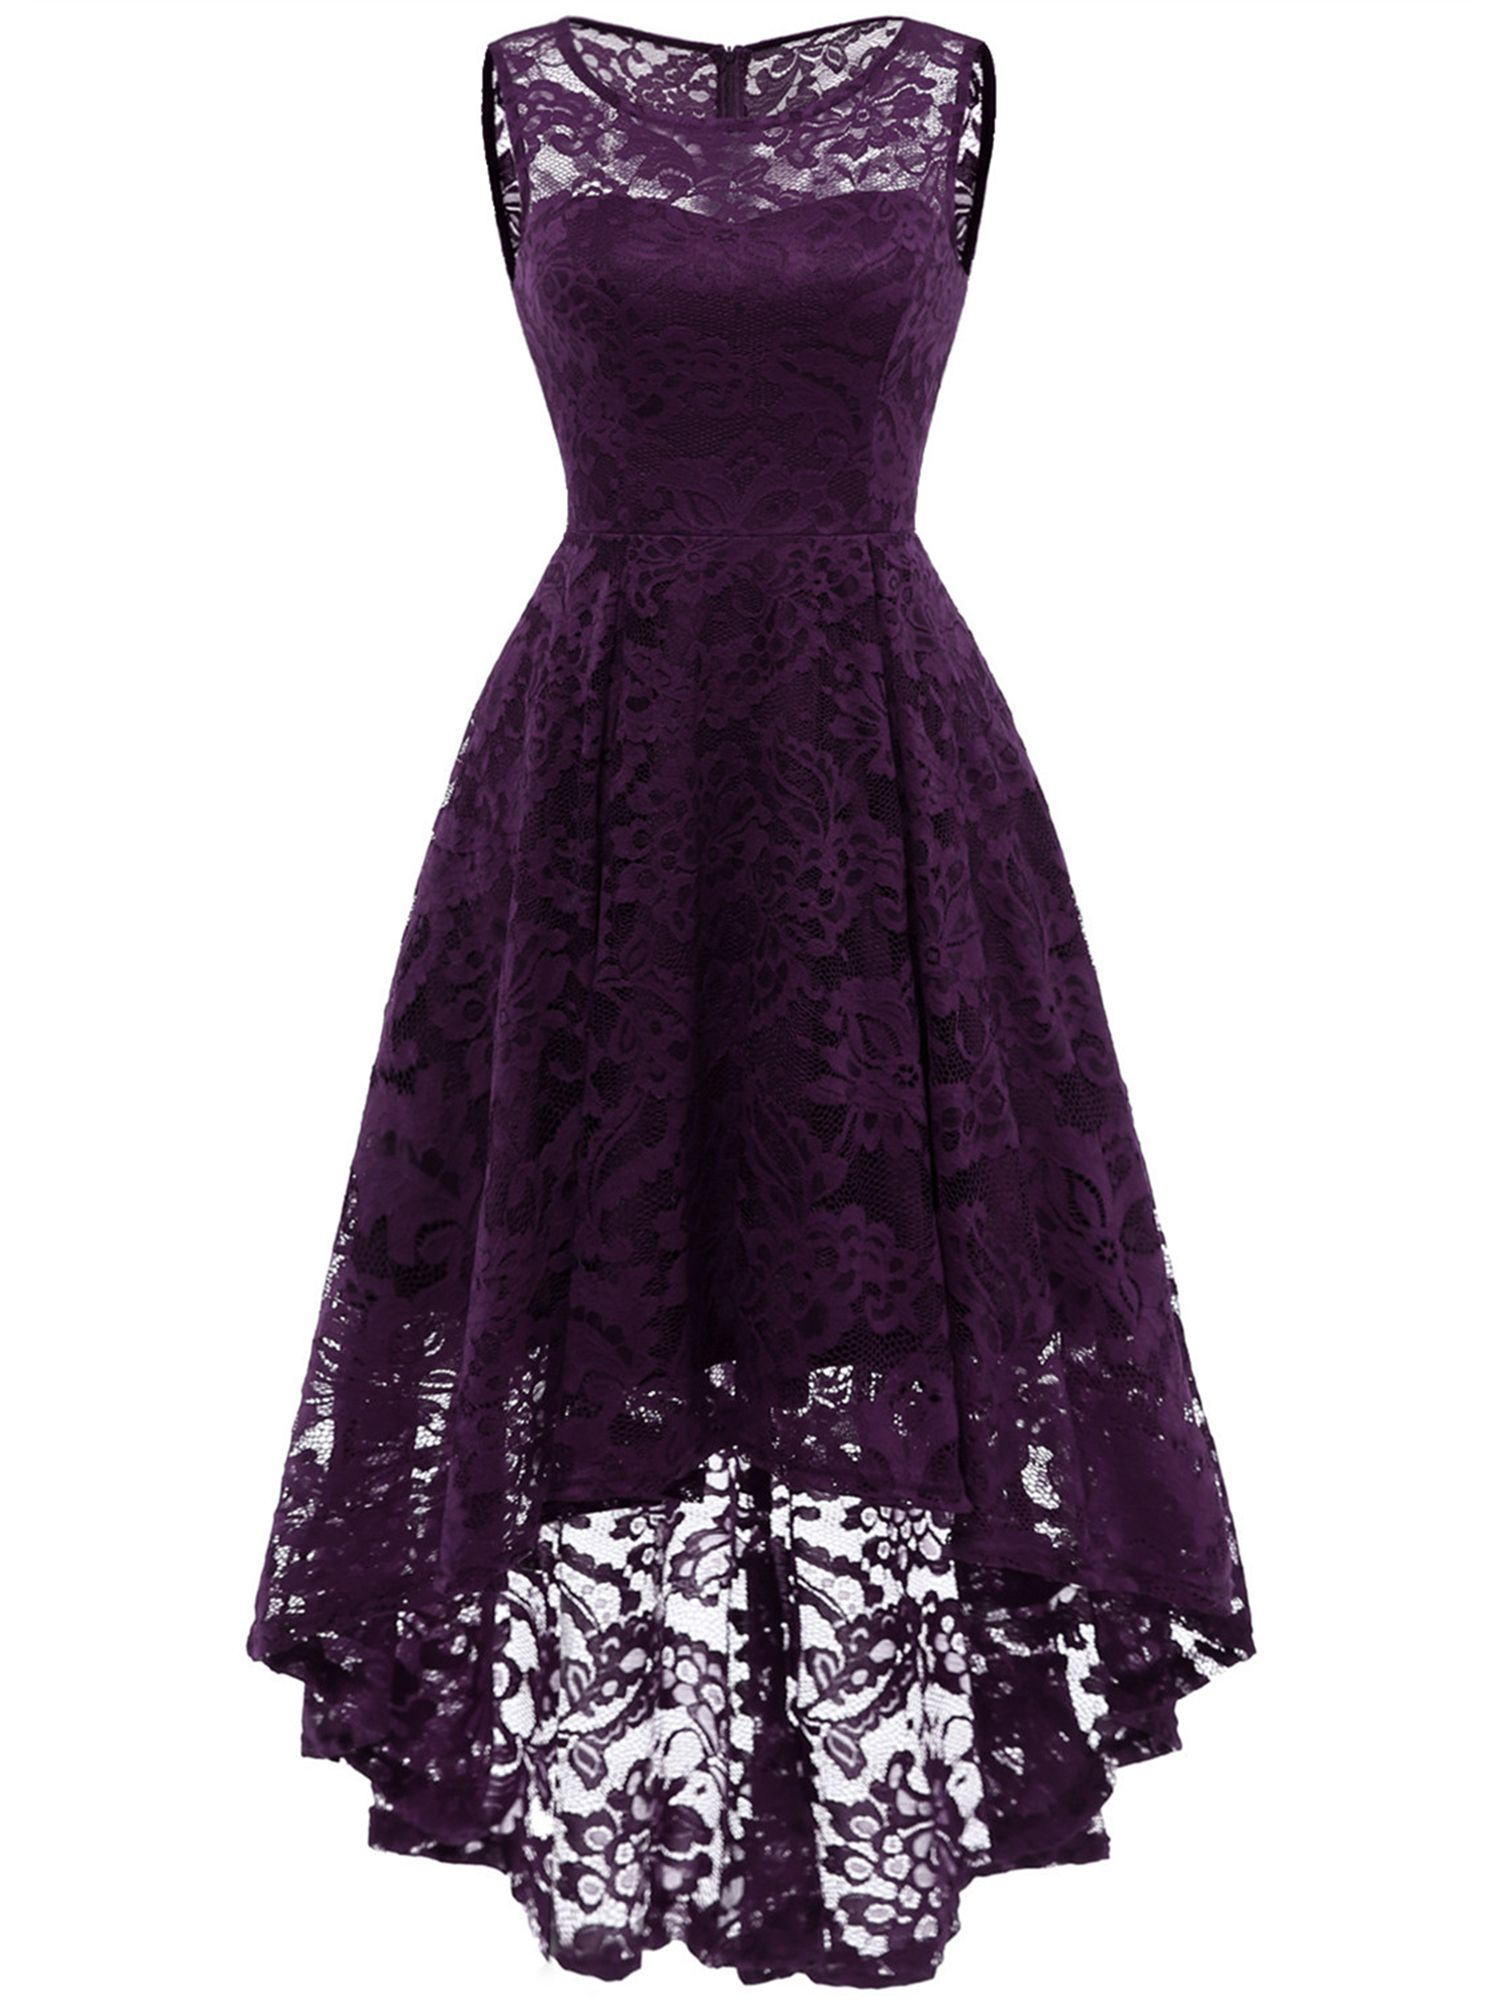 Free 2 Day Shipping Buy Market In The Box Women S Lace Dress Vintage Floral Sleeveless Hi Lo Formal Part Lace Dress Vintage Women Lace Dress Party Dress Short [ 2000 x 1500 Pixel ]